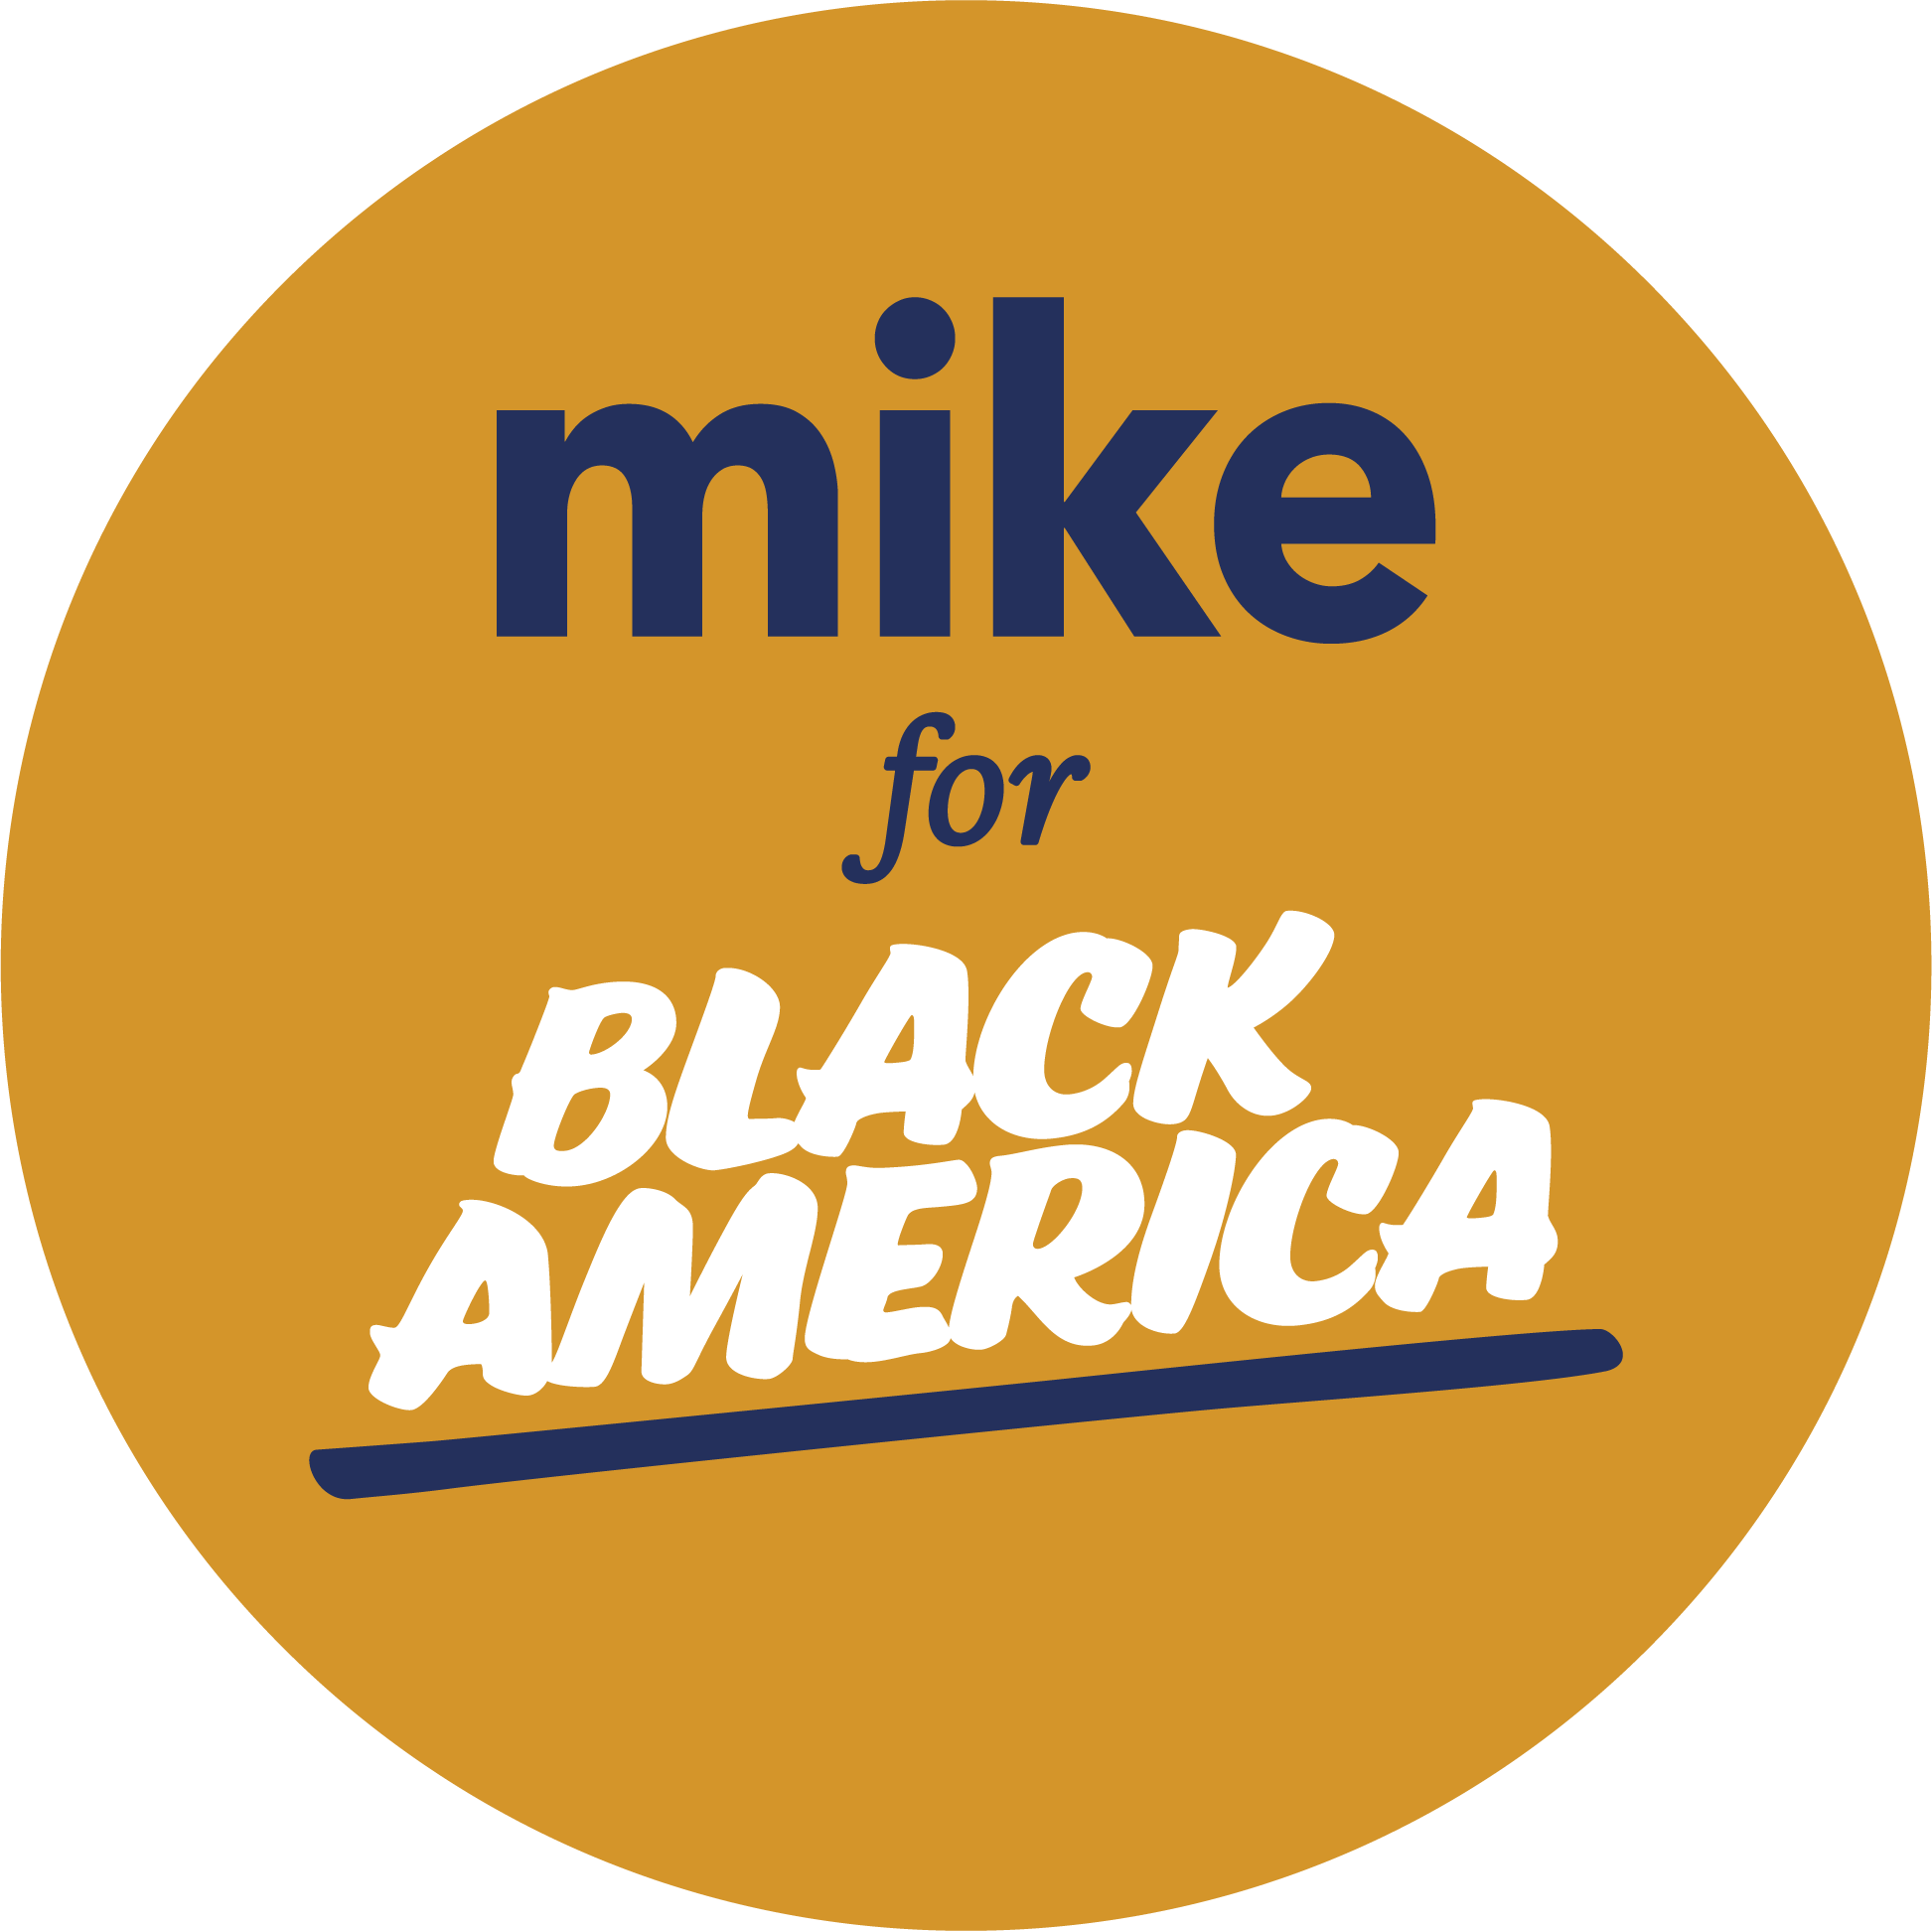 Mike for Black America